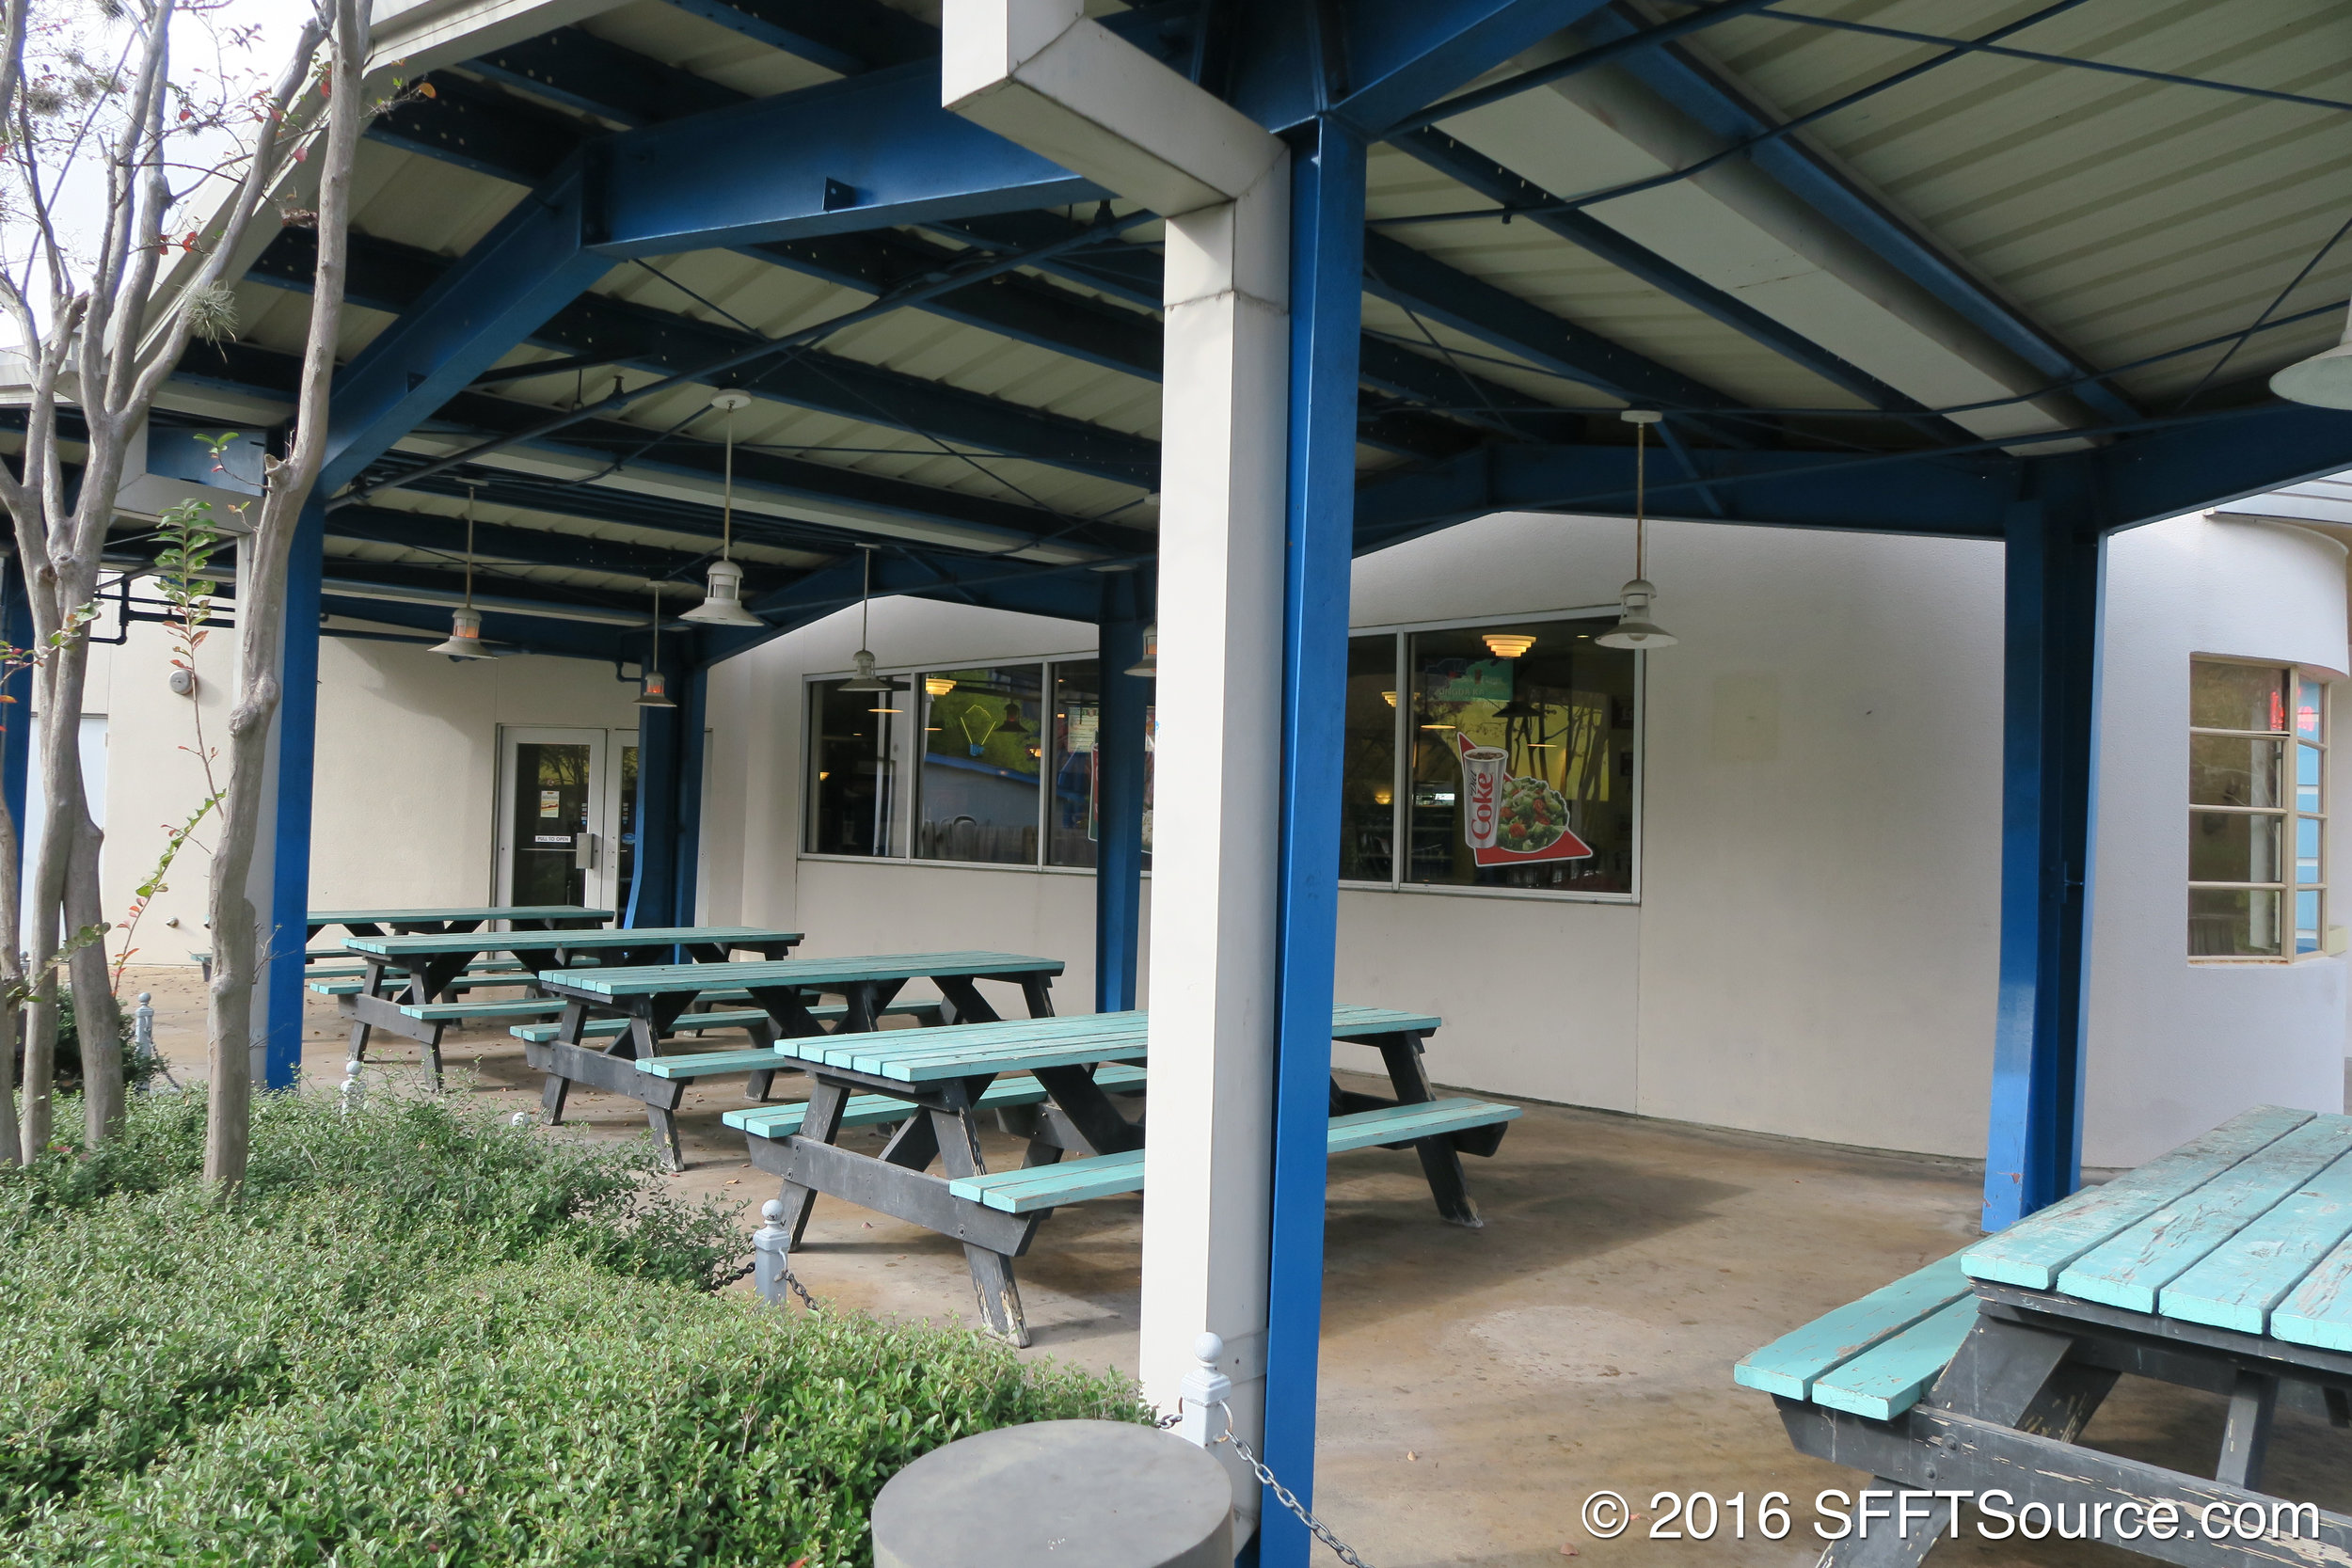 Covered outdoor seating is available.